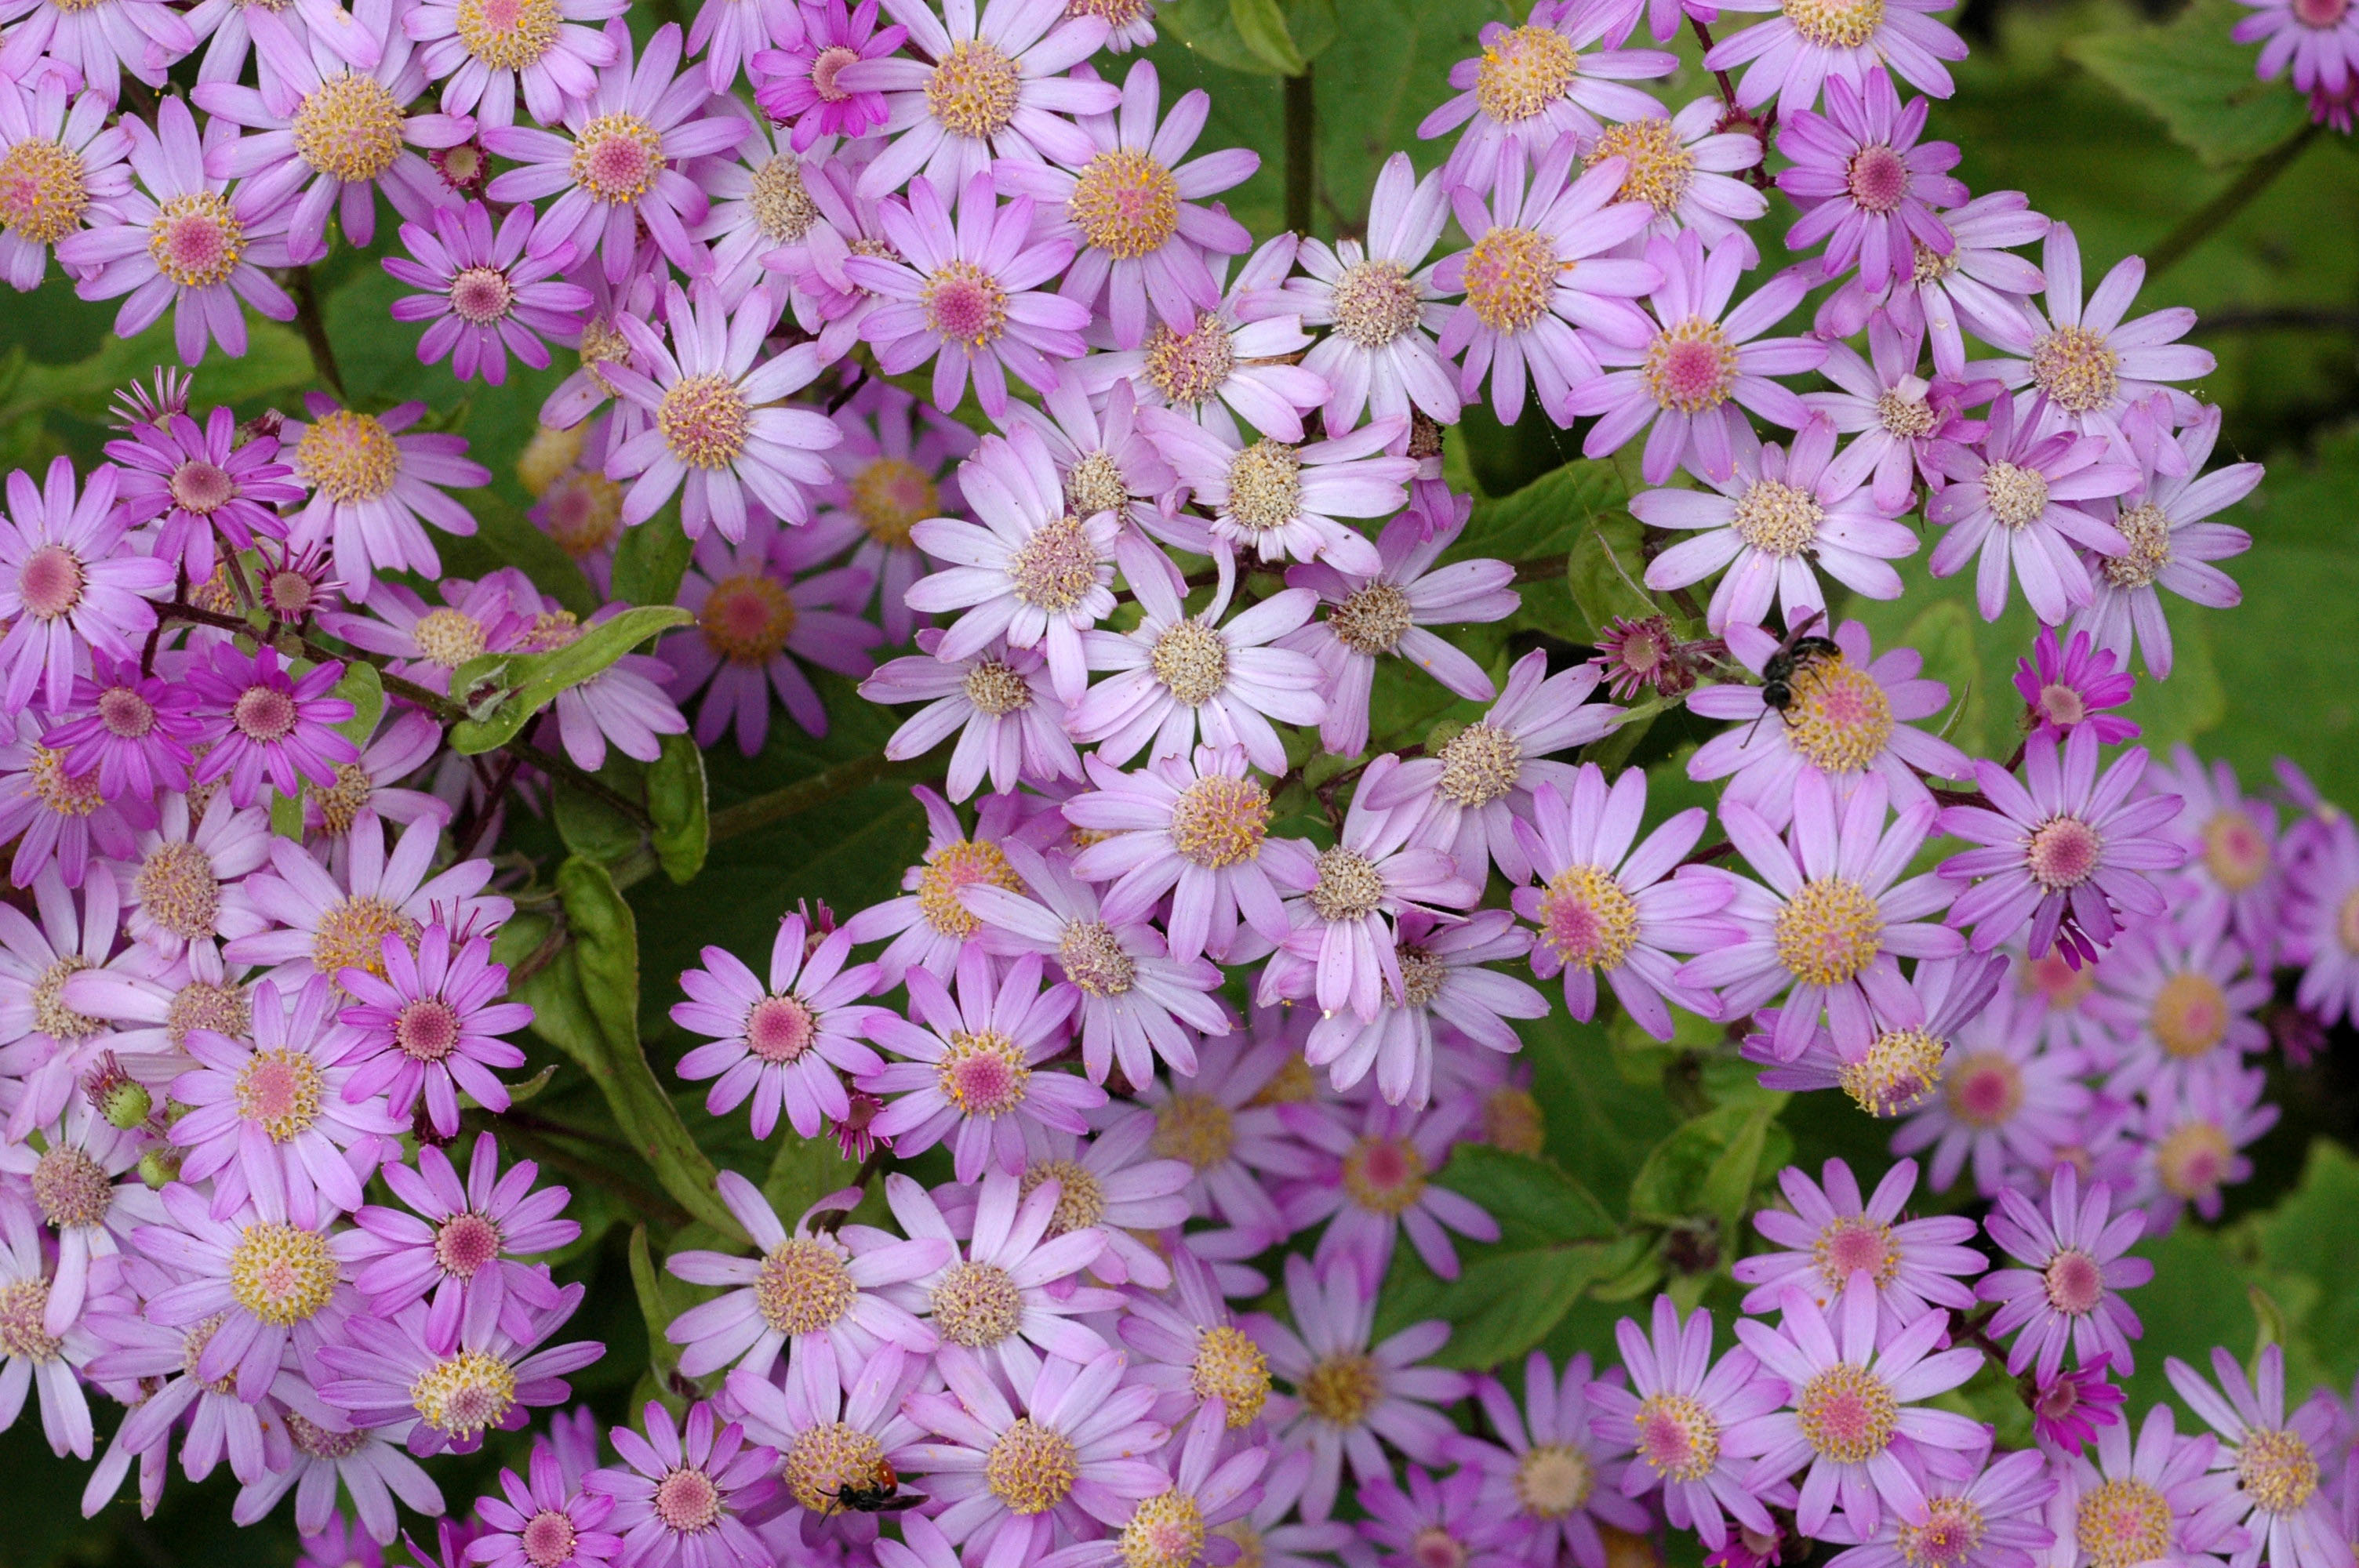 Pericallis steetzii